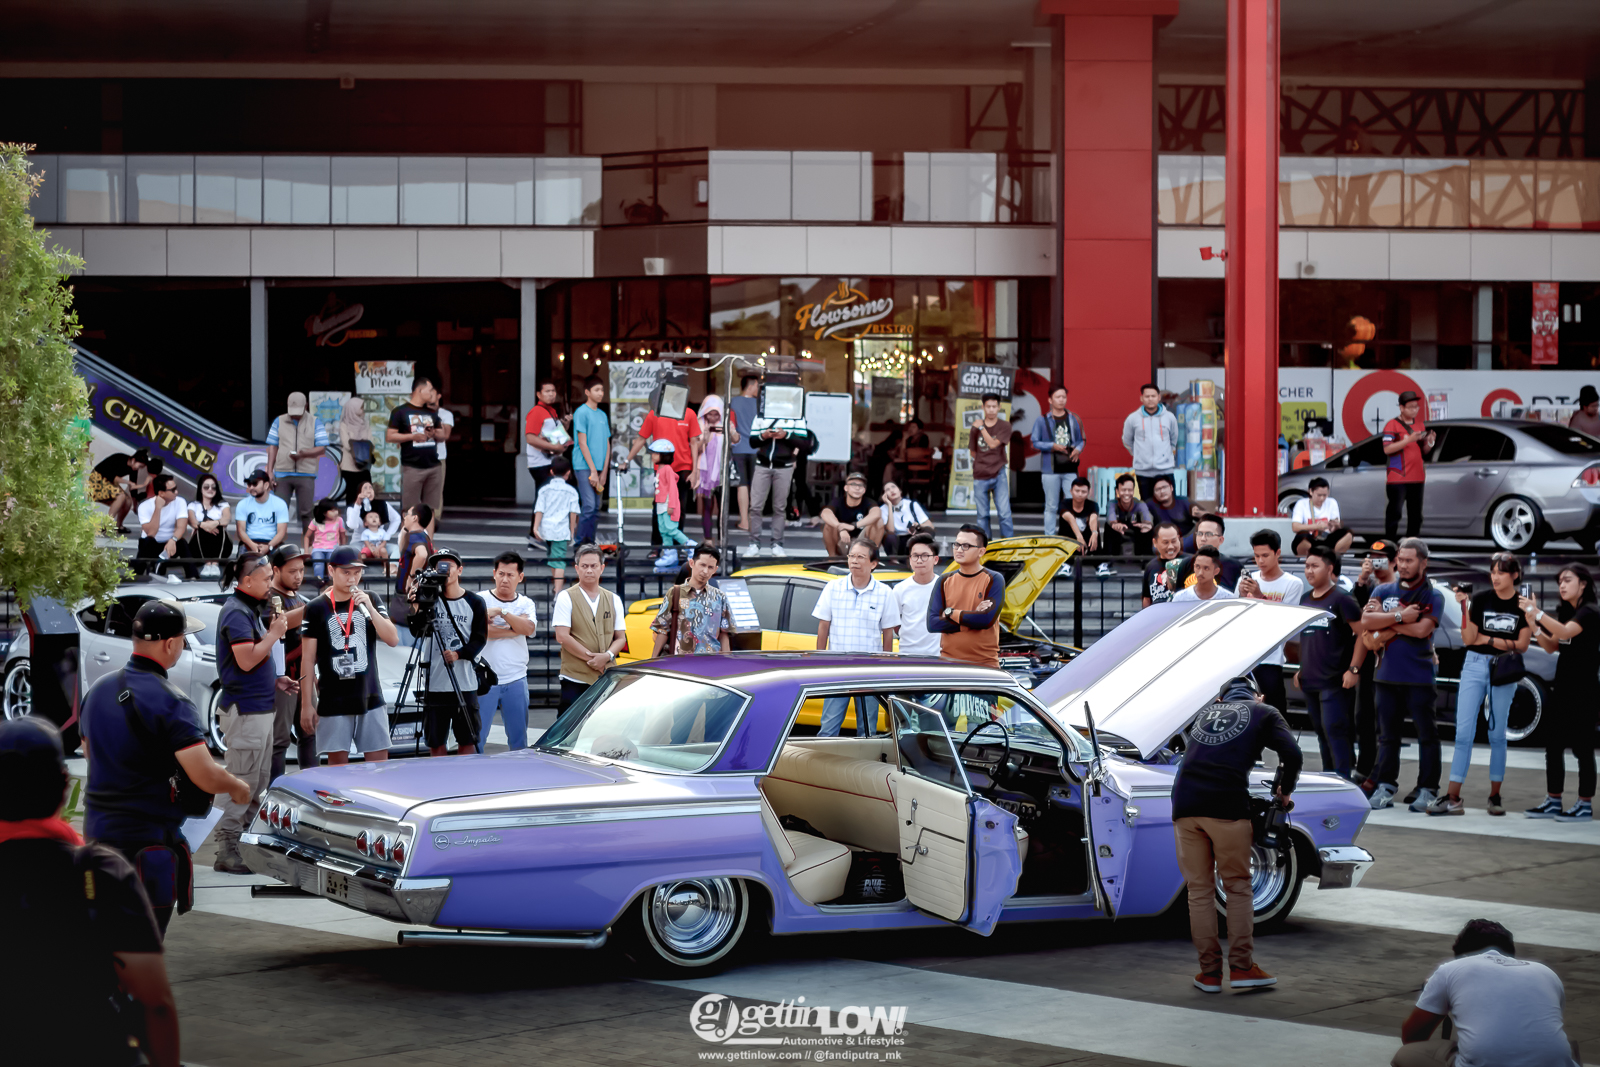 INTERSPORT-PROPERCARCONTEST-QBIG-CANON-166